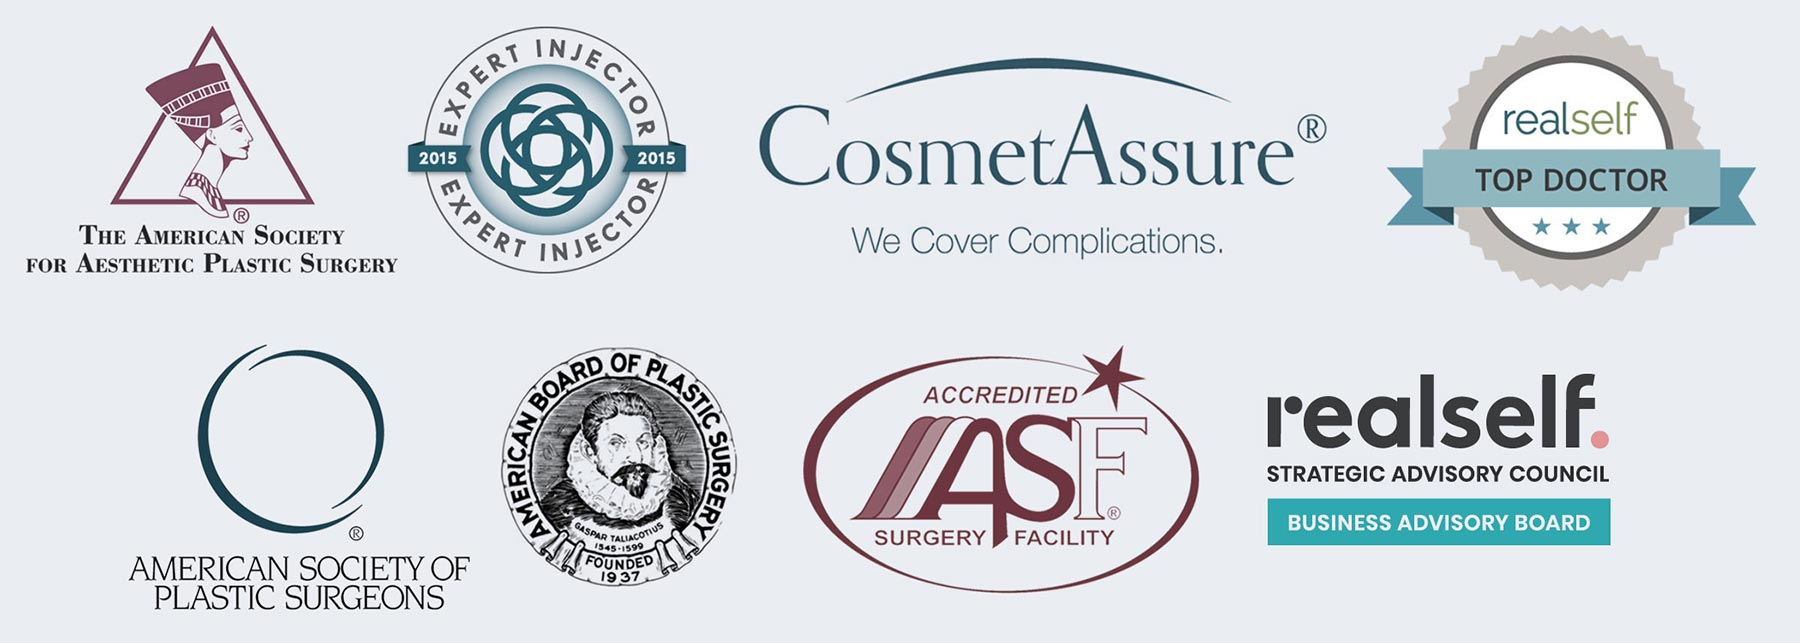 Associate Logos: Expert Injector 2015, CosmetAssure®, RealSelf Top Doctor 2019, American Society of Plastic Surgeons, American Board of Plastic Surgery, ASF